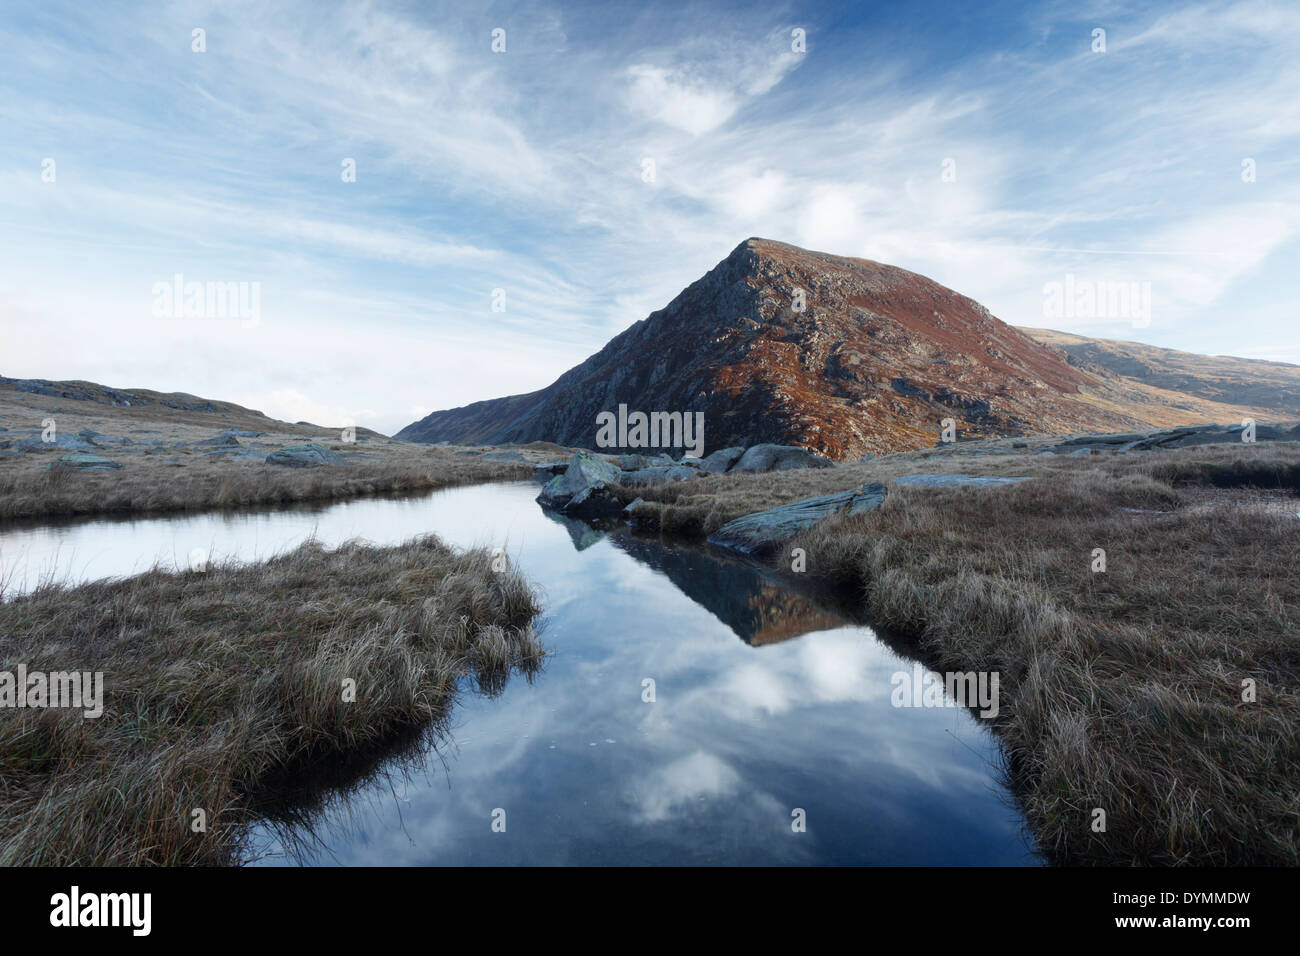 Pen yr Ole Wen reflected in the River Idwal. Snowdonia National Park. Wales. UK. - Stock Image